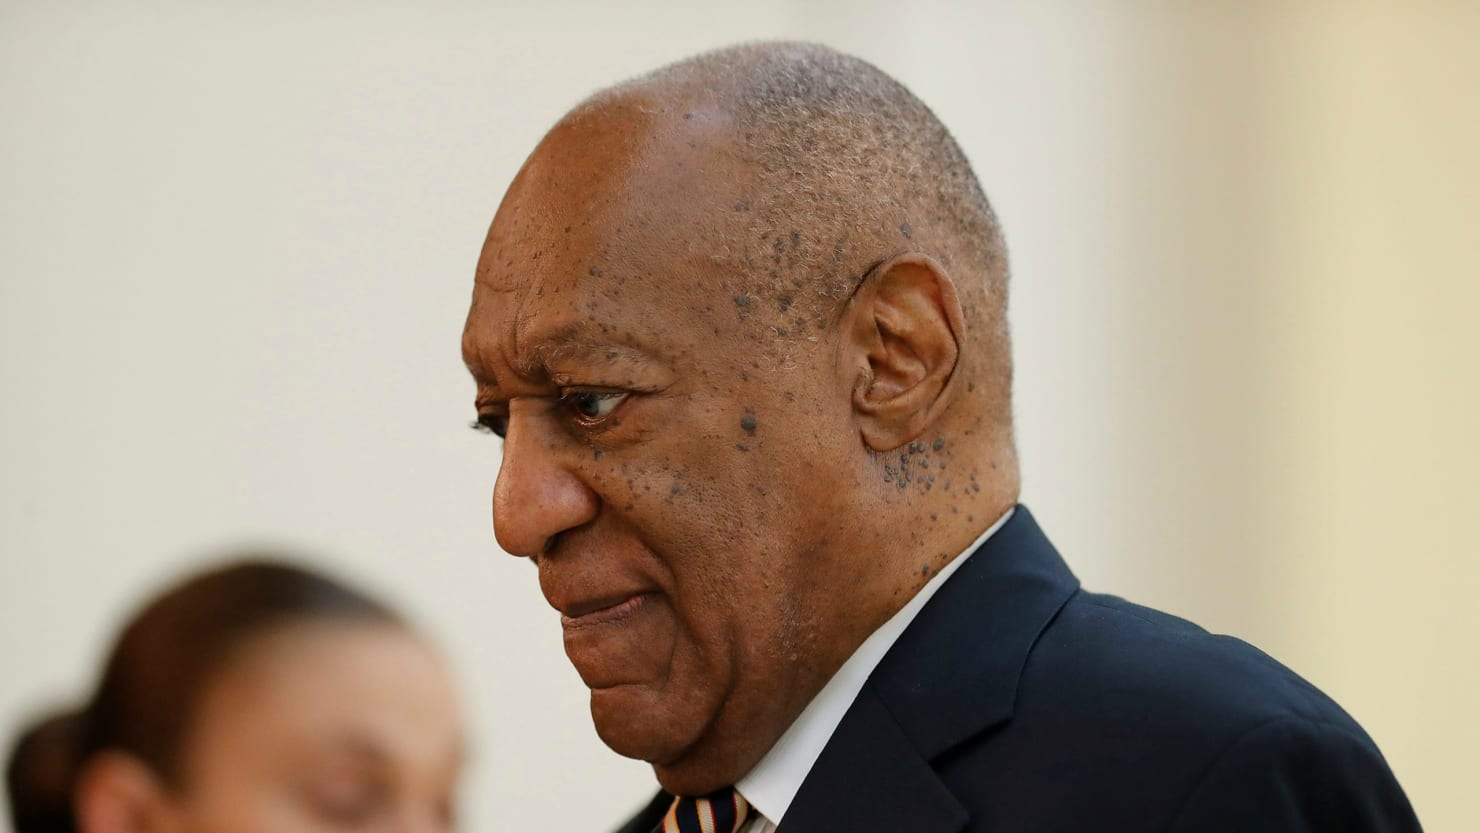 Bill cosby false allegations of sexual harassment